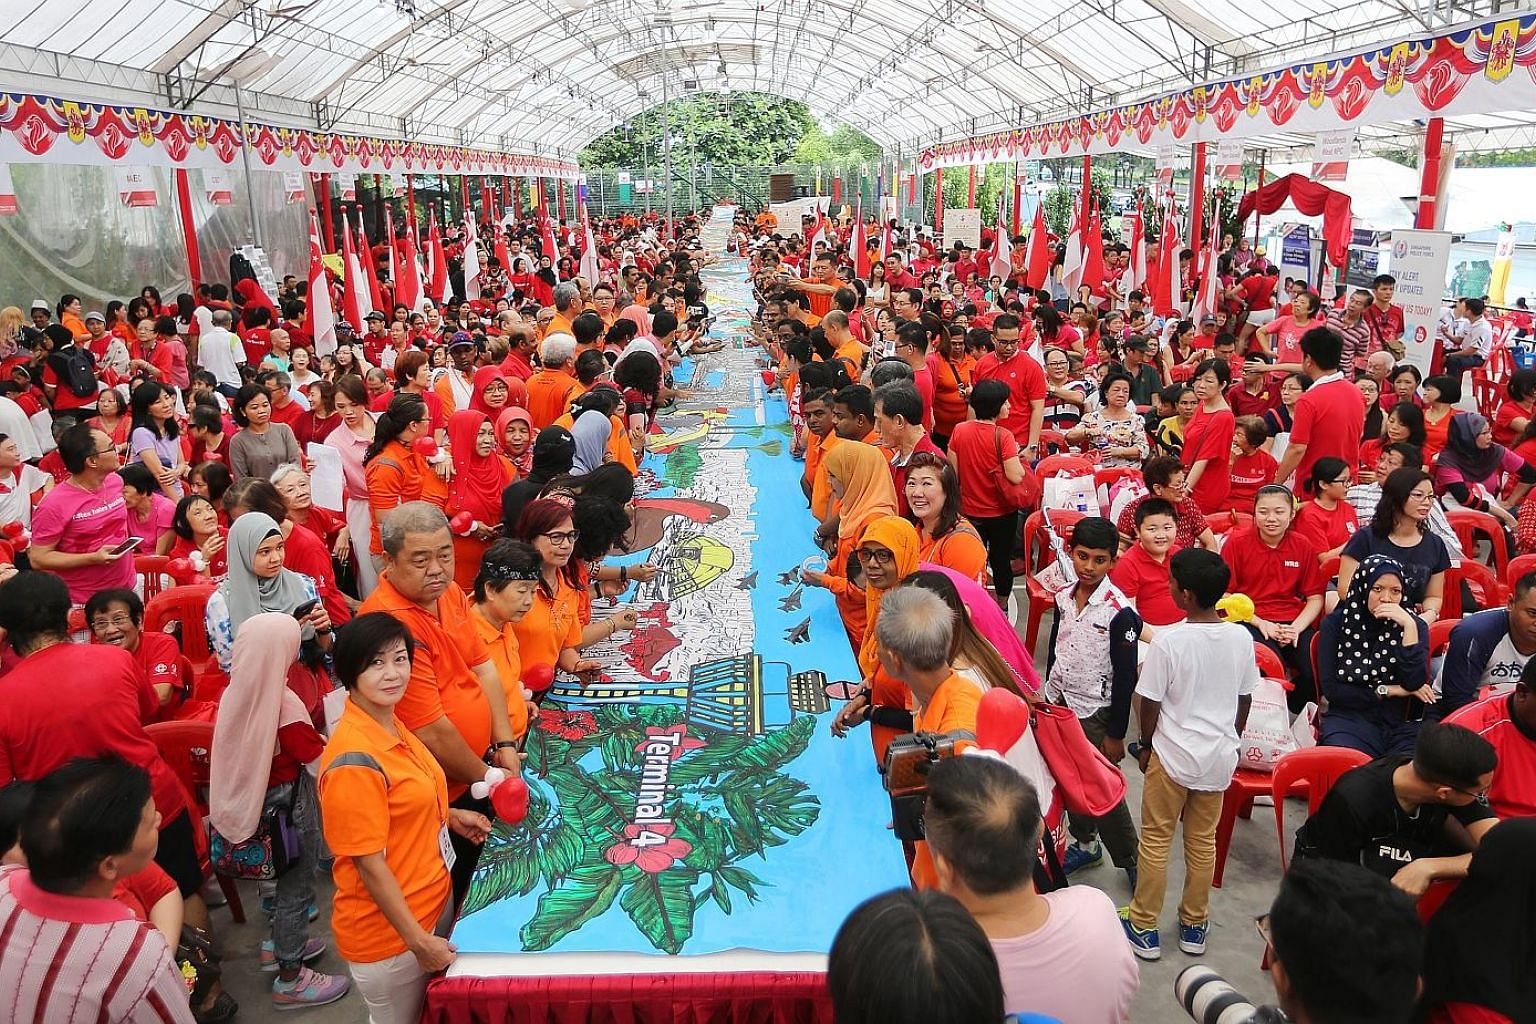 Marsiling residents yesterday unveiled a record-setting, 52m-long banner painting that charts Singapore's development from independence in 1965 till today.